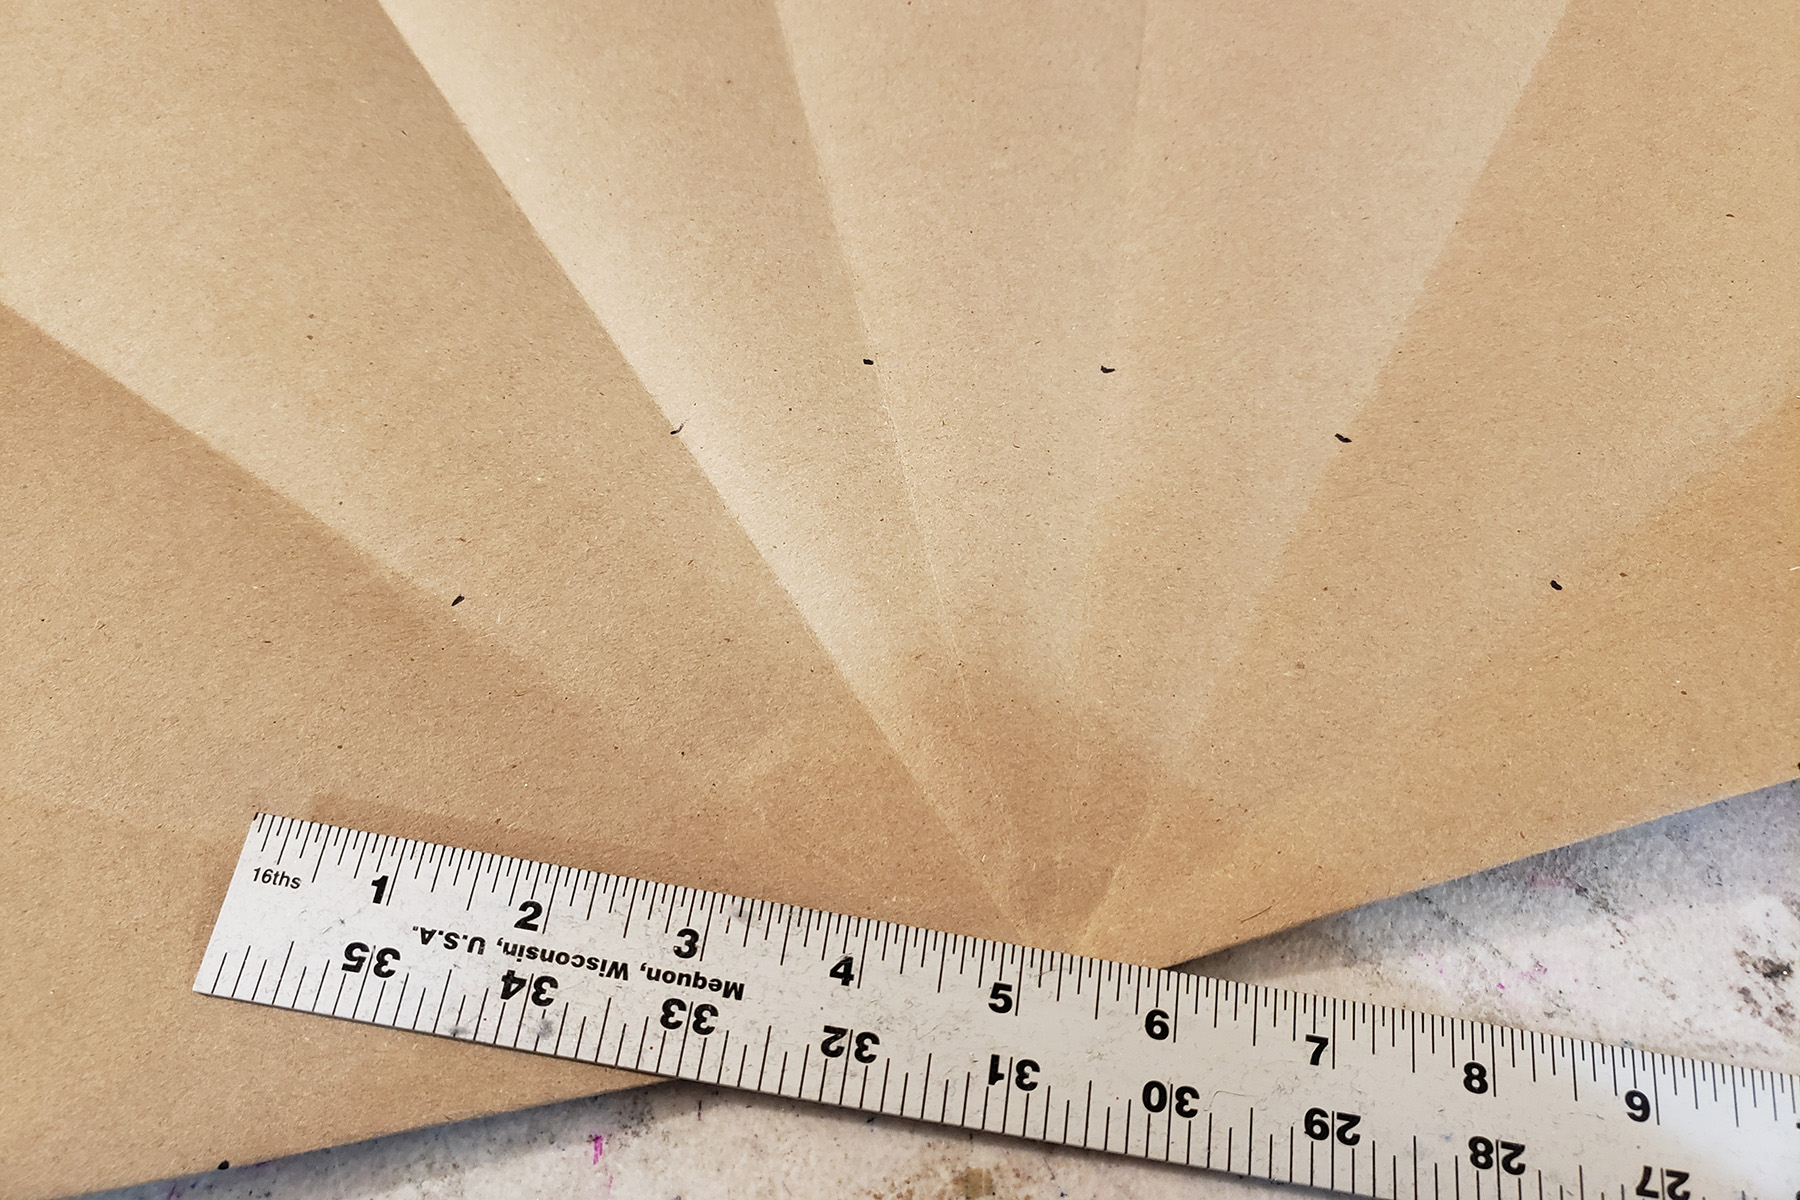 A large piece of brown craft paper with multiple folds radiating out from a central point.